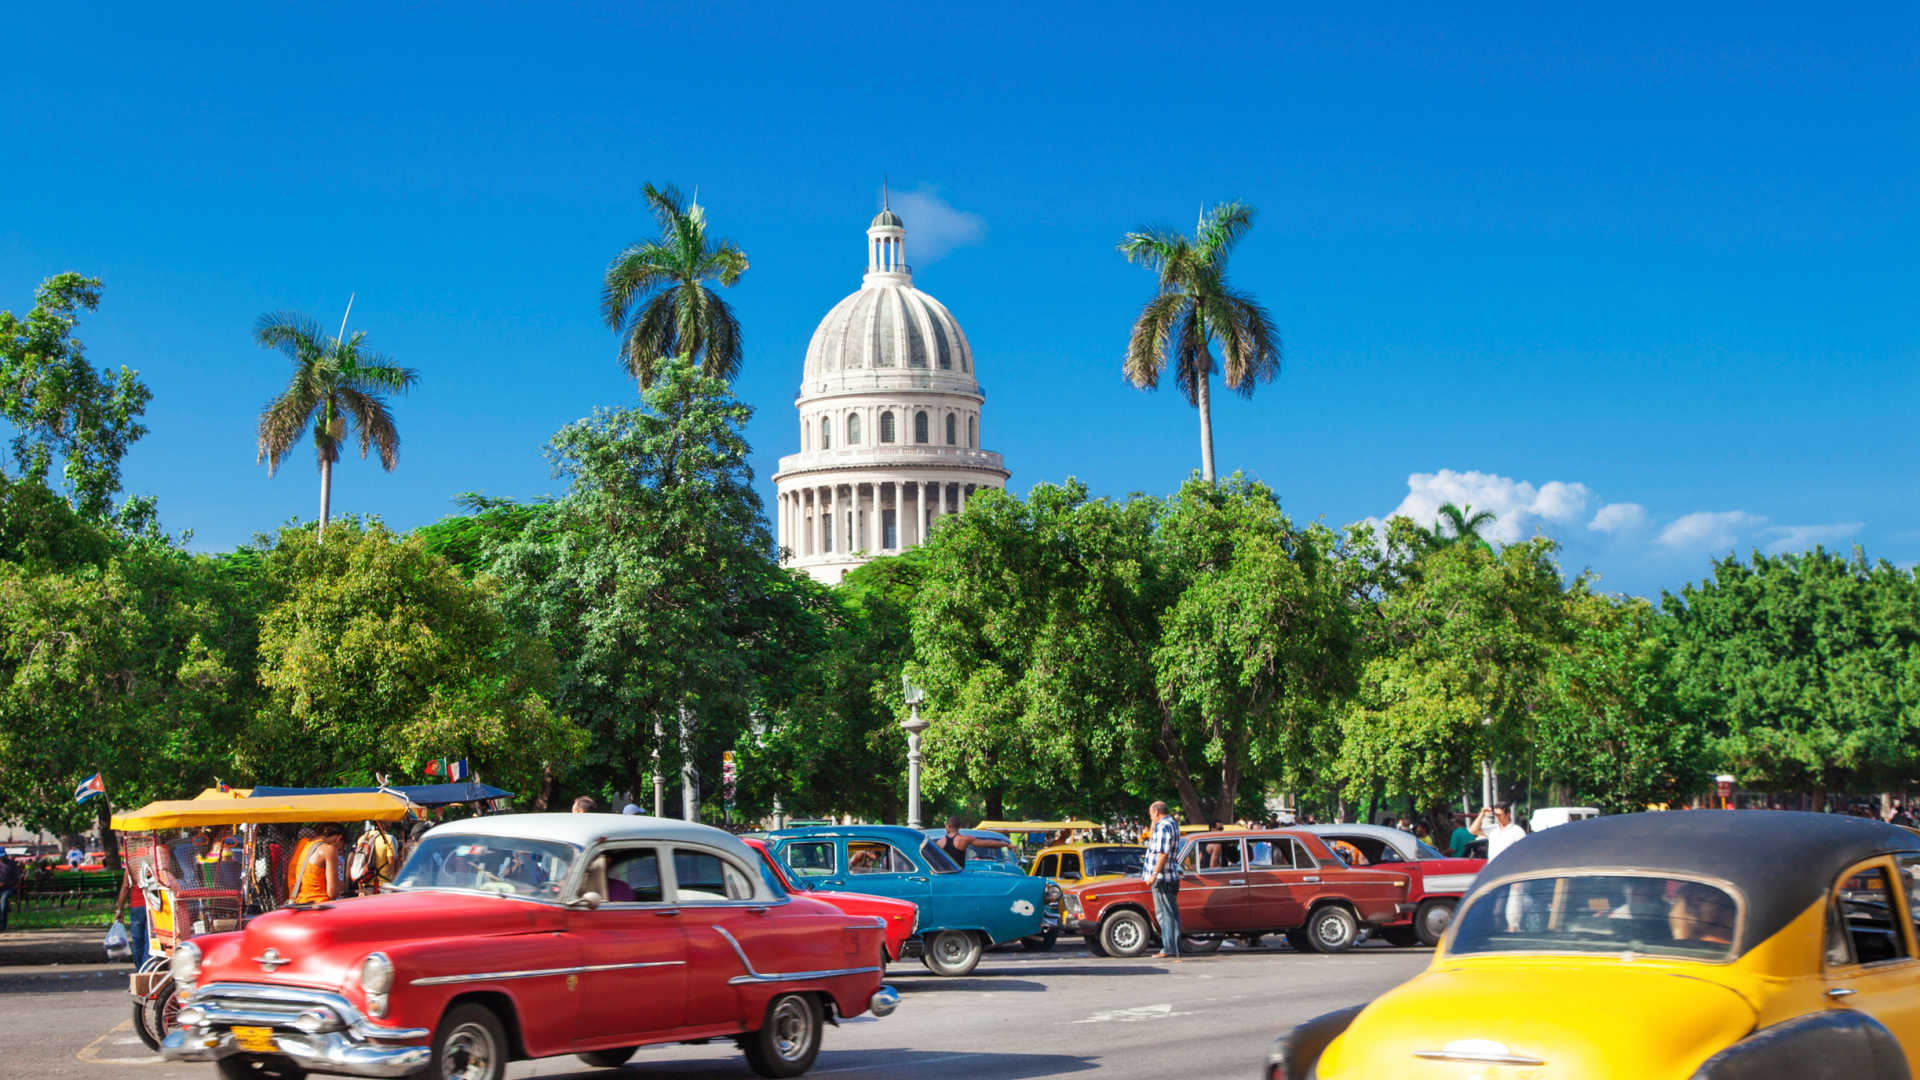 7 Interesting Things That You Should Do In Cuba